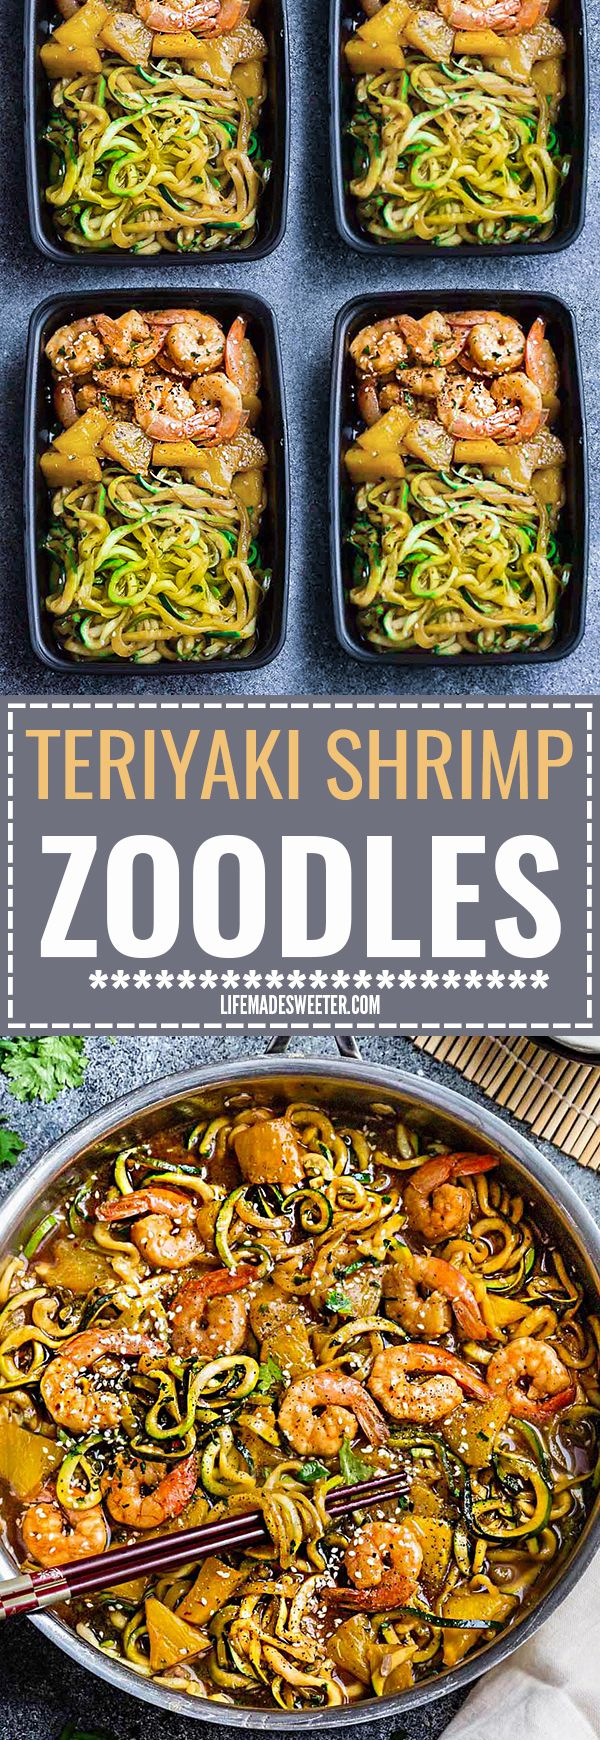 One Pan Teriyaki Shrimp Zoodles {Zucchini Noodles} is the perfect easy gluten free (or paleo) weeknight meal! Best of all, it takes only 30 minutes to make in just one pot and is so much healthier and better than takeout! Great for Sunday meal prep and le (work lunches)